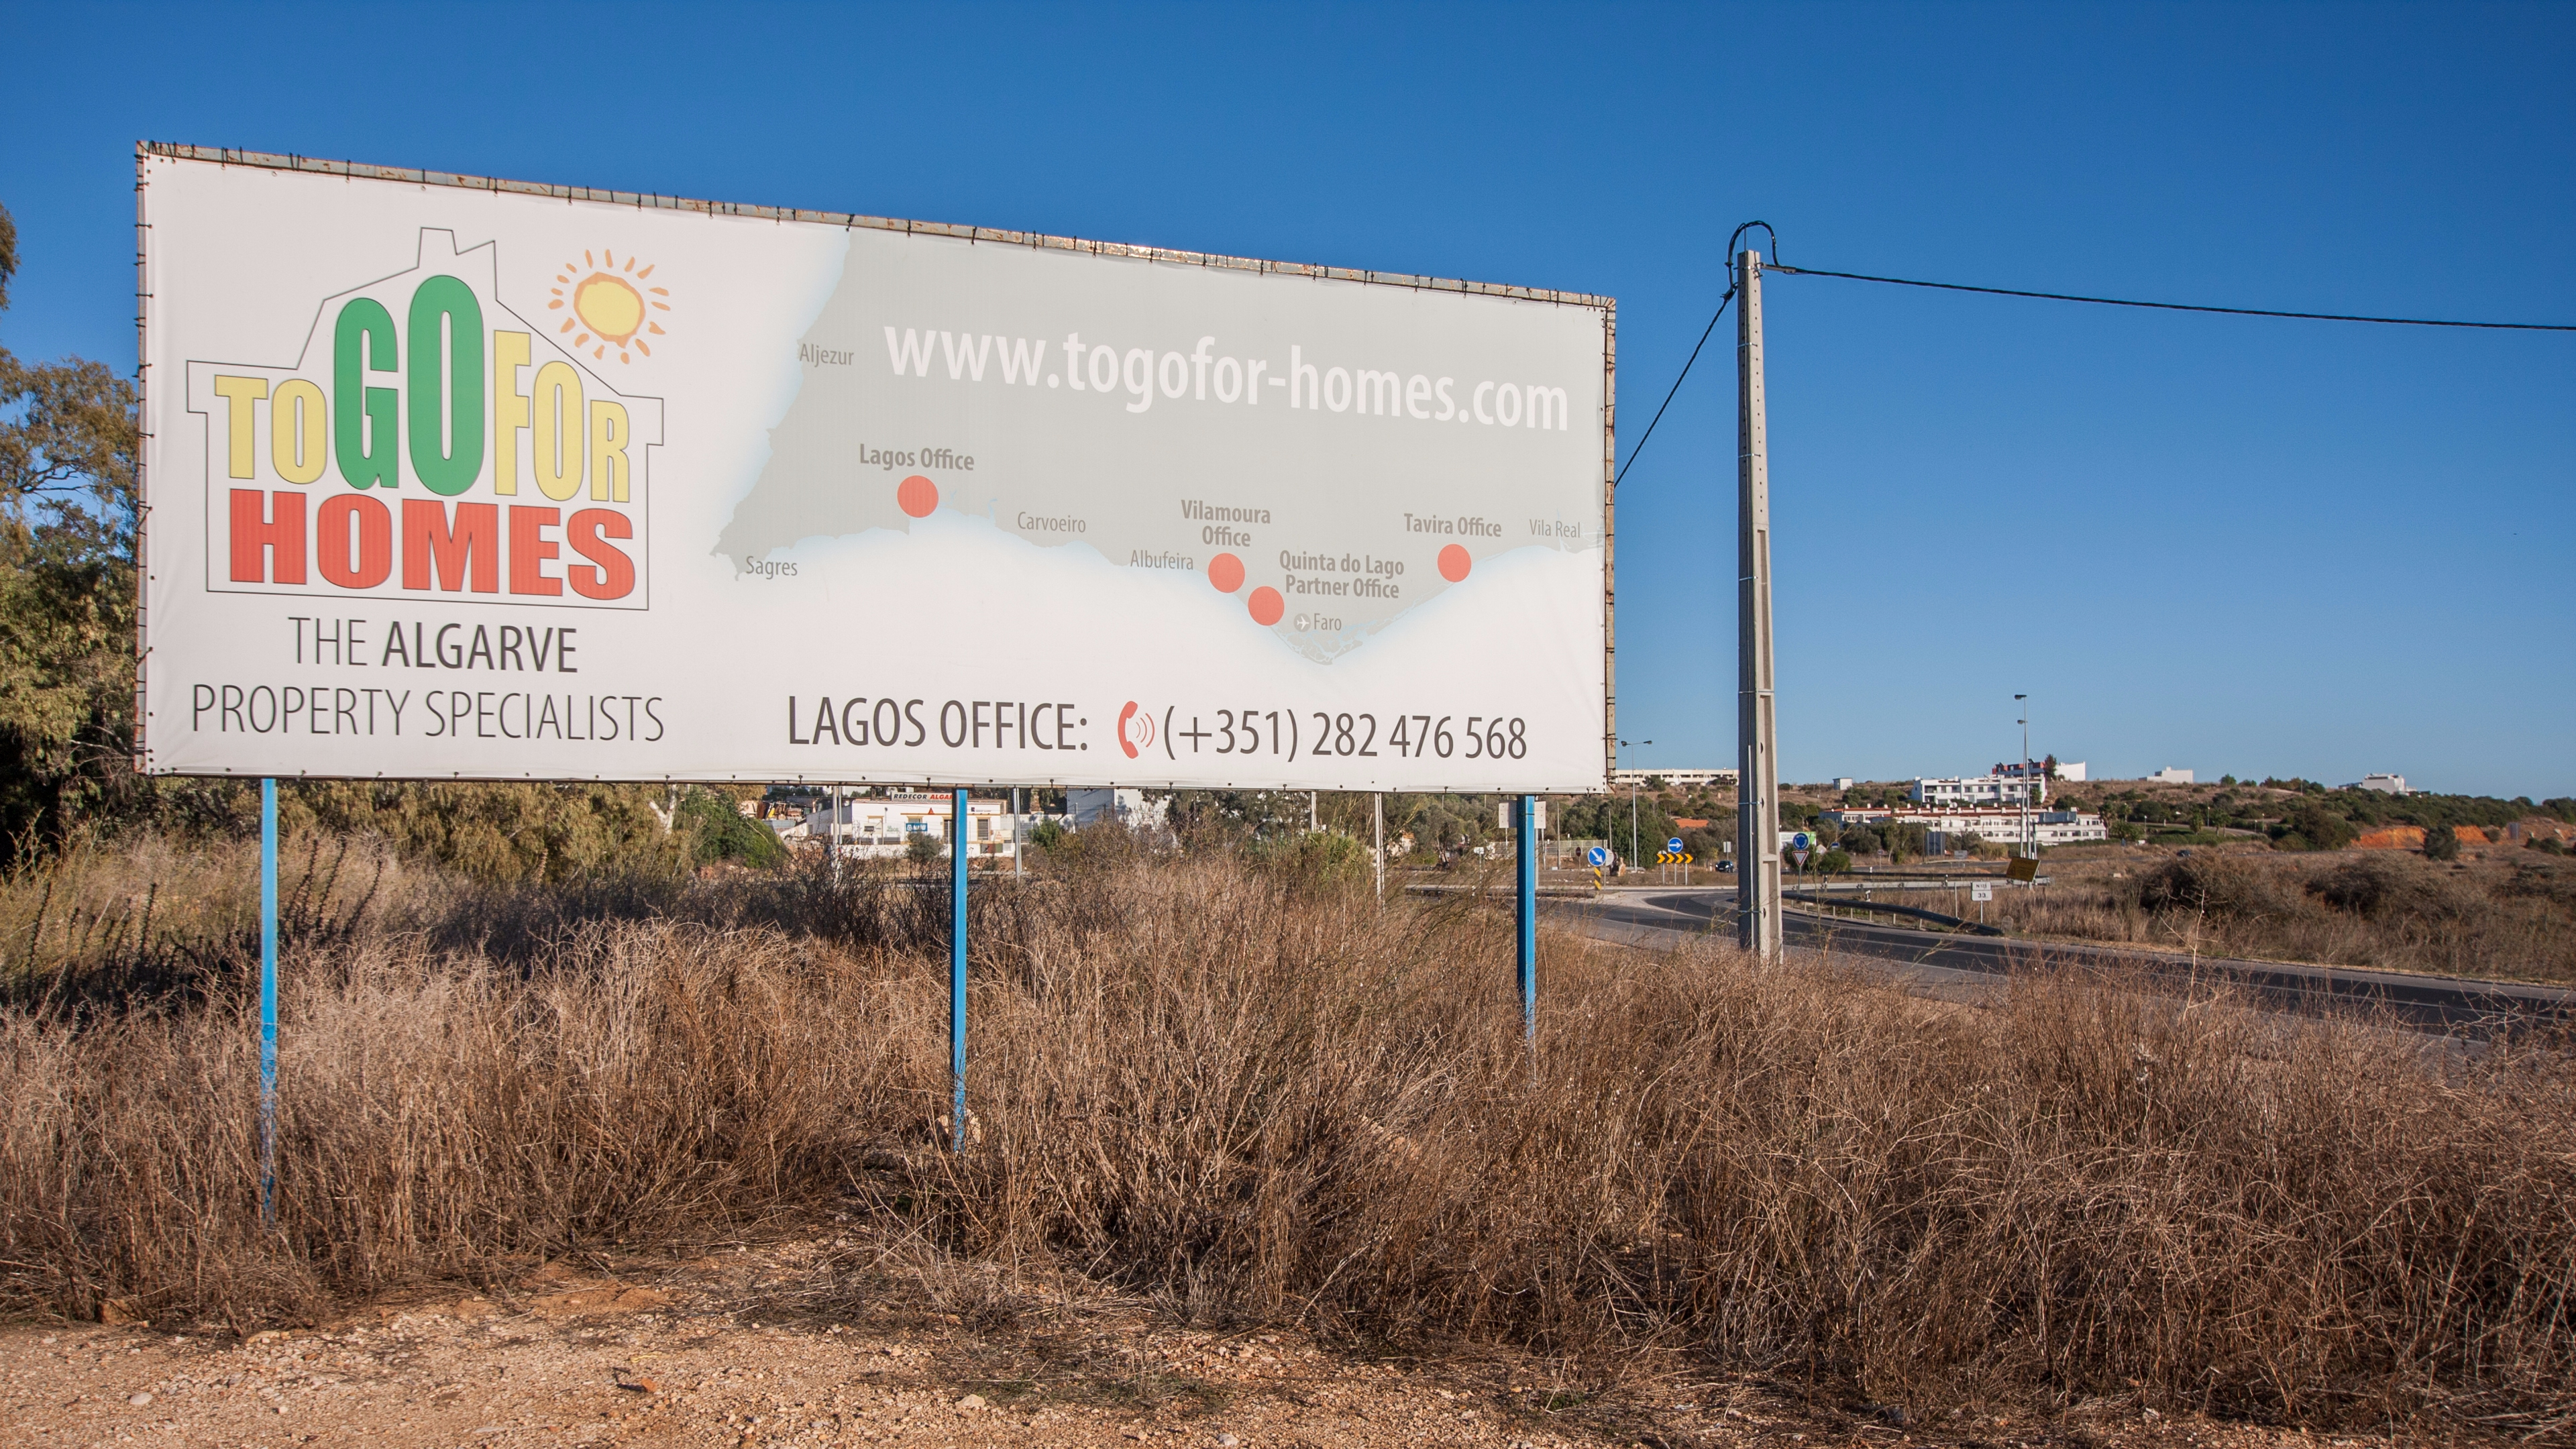 Togofor-Homes invests €100.000 per year in billboard advertising, since 2017!